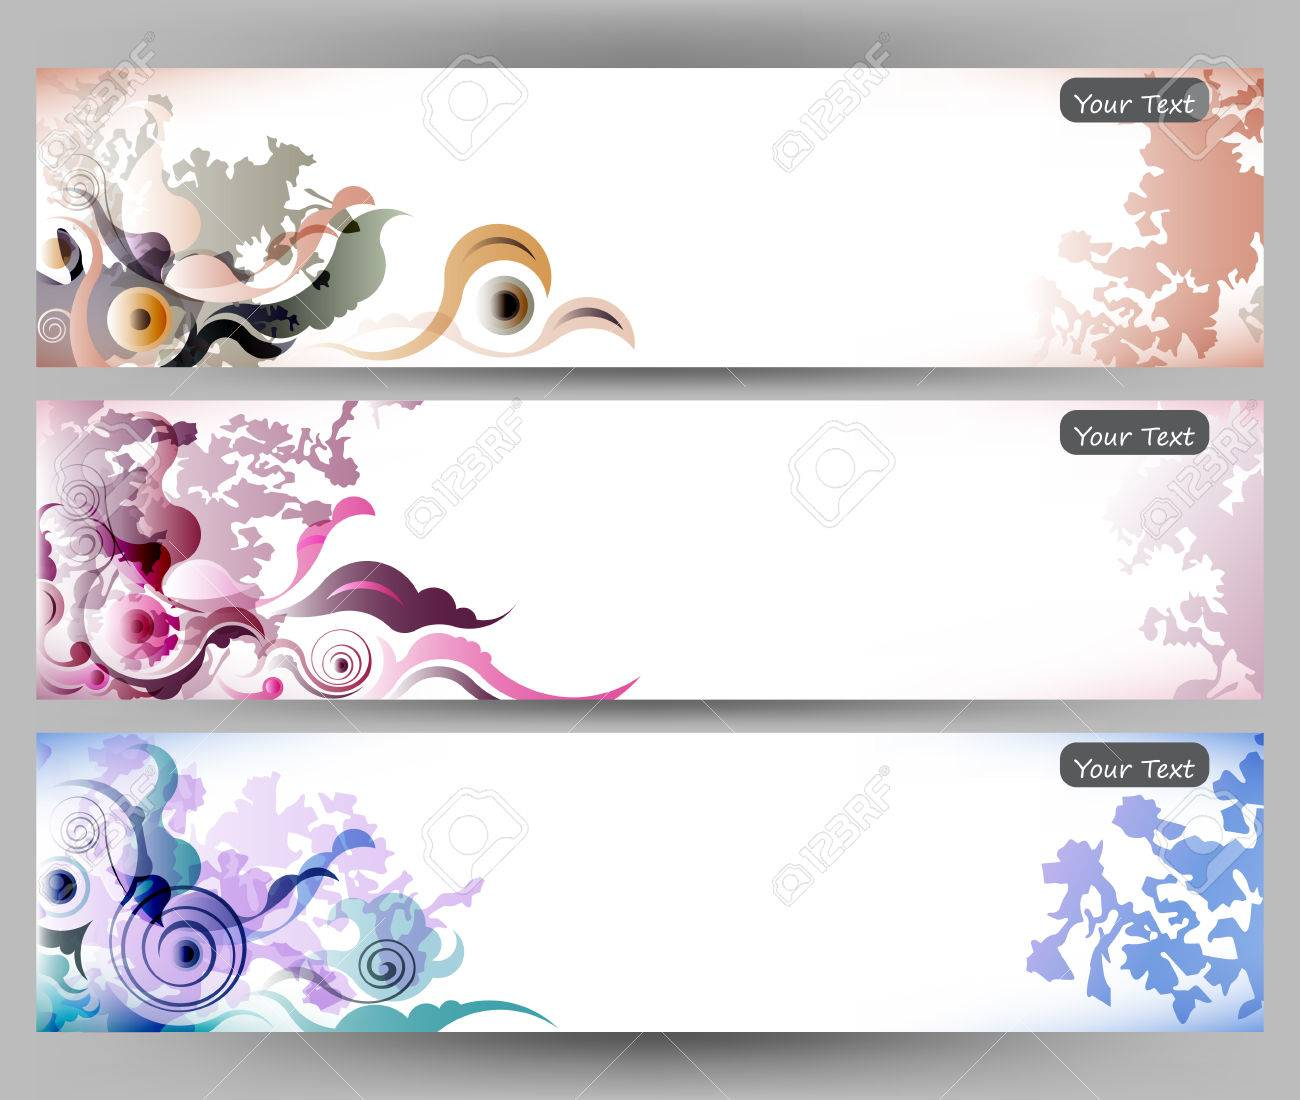 Abstract Colorful Flower Vector Background Brochure Template